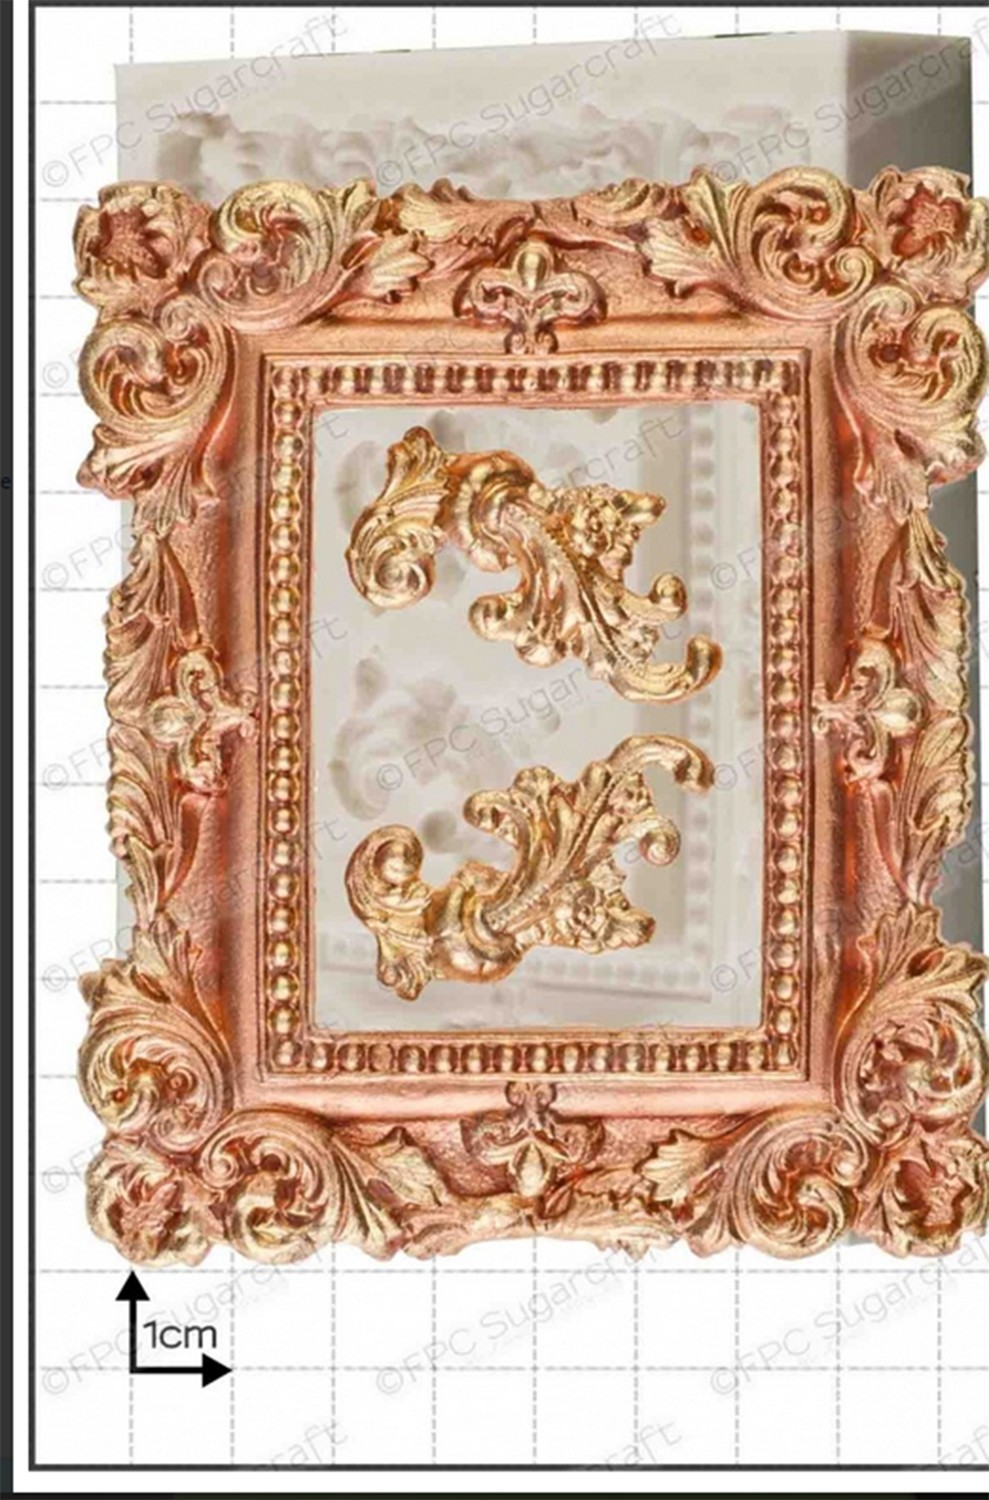 By FPC -Silicone Mould -FRAME -LARGE PICTURE FRAME -Καλούπι Μεγάλη Κορνίζα